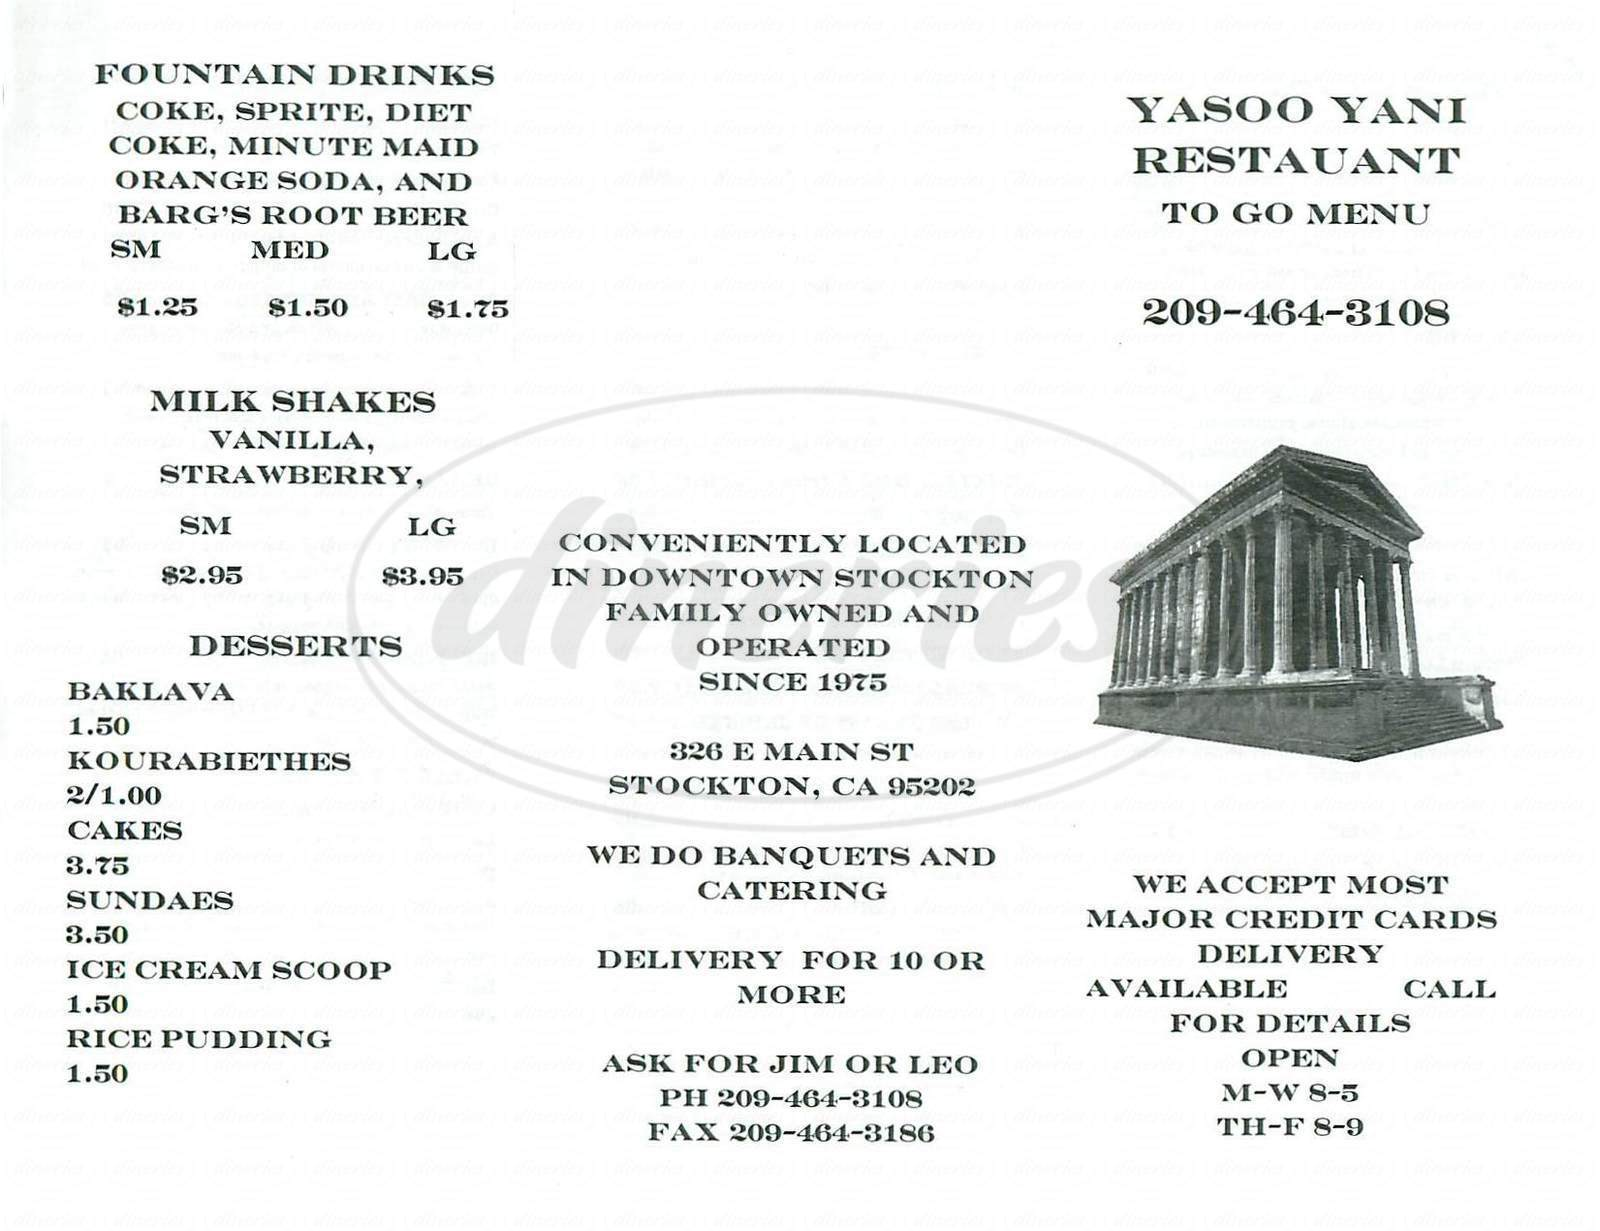 menu for Yasoo Yani